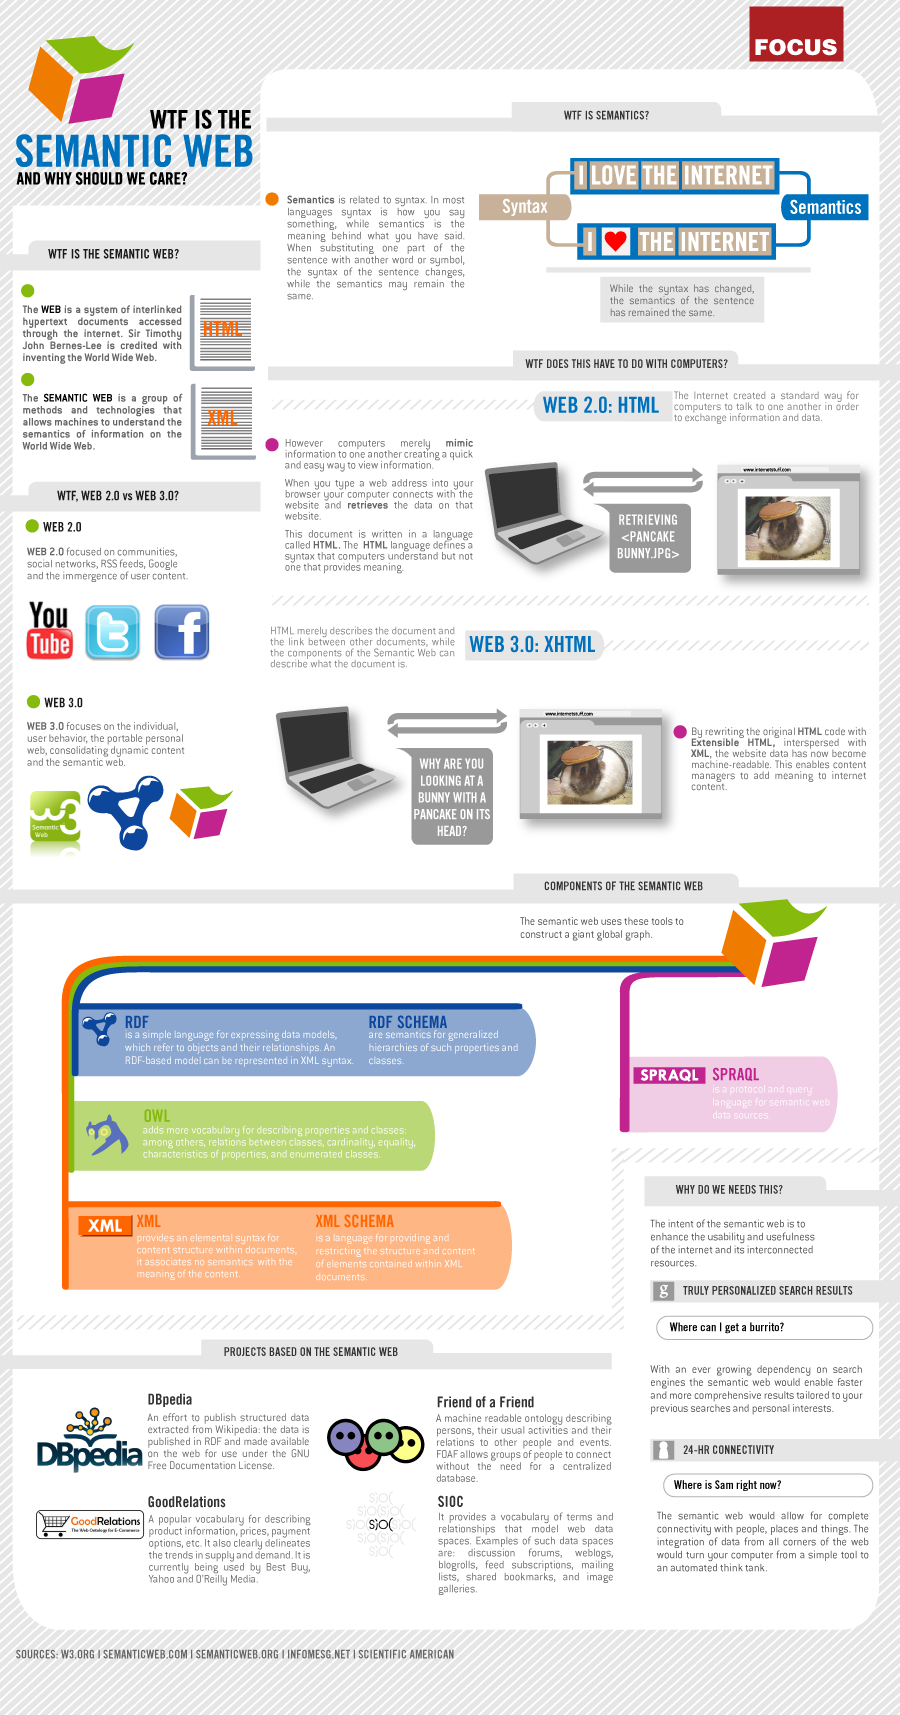 social bookmarking sites importance user generated votes links